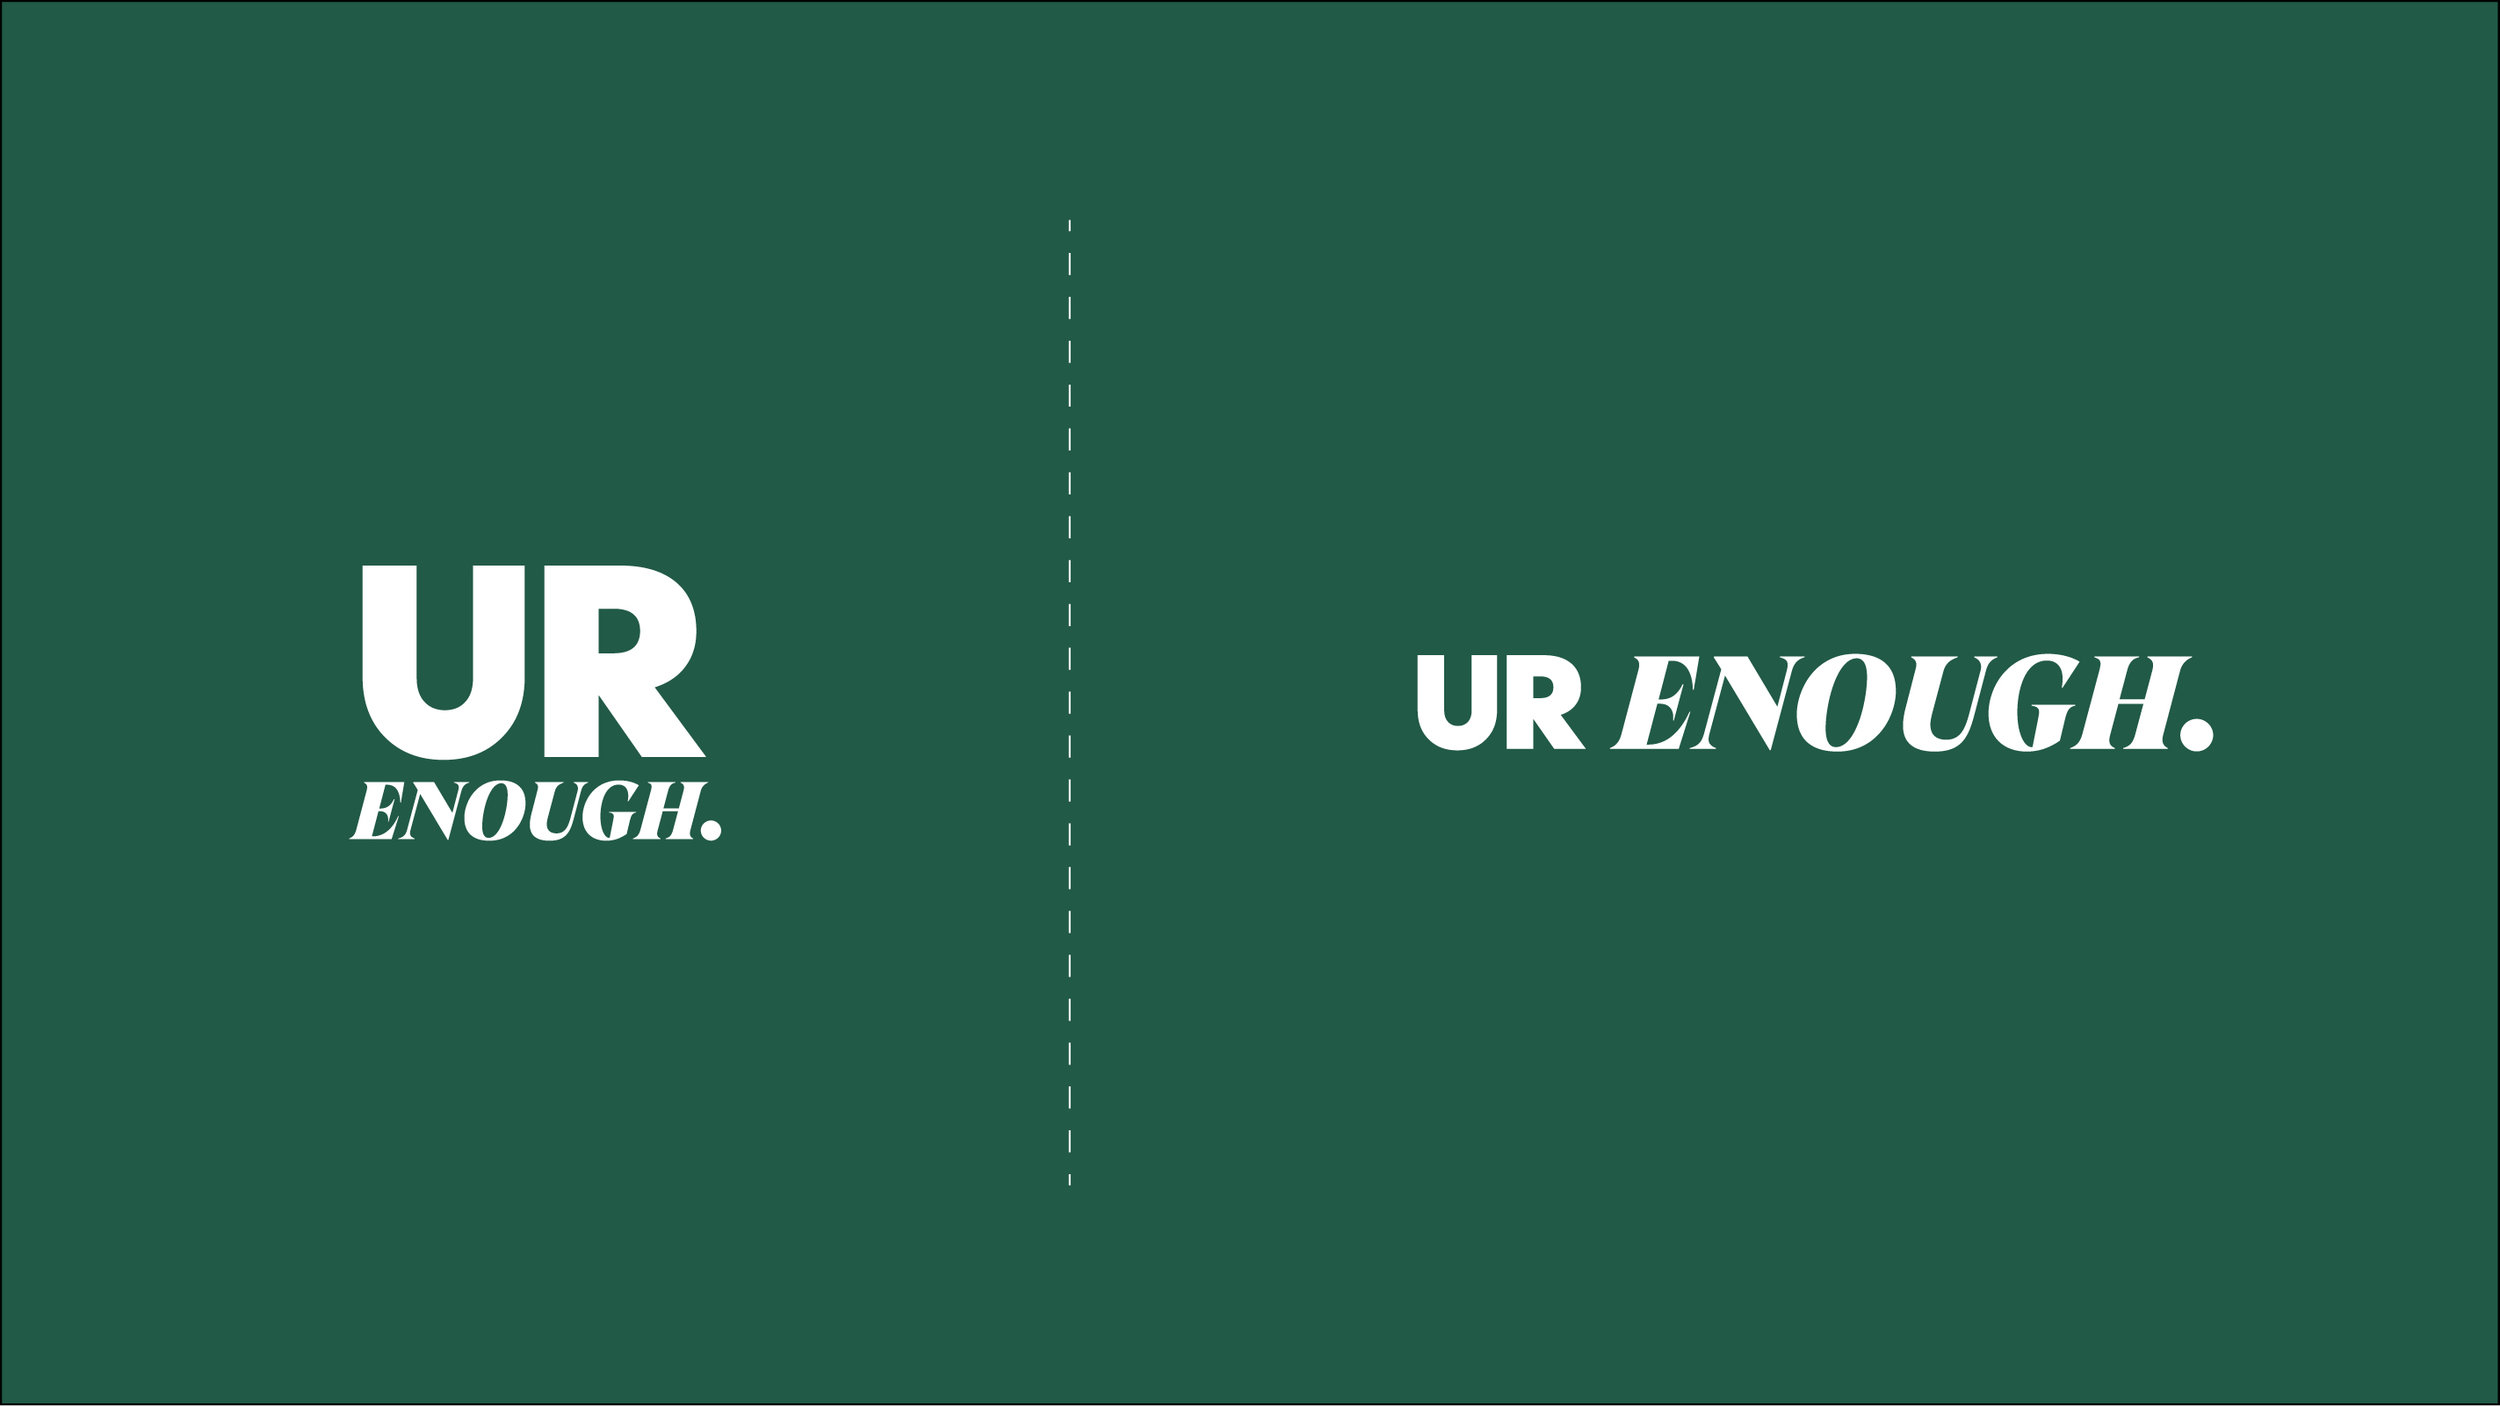 UR ENOUGH_logo_GREEN-01.jpg